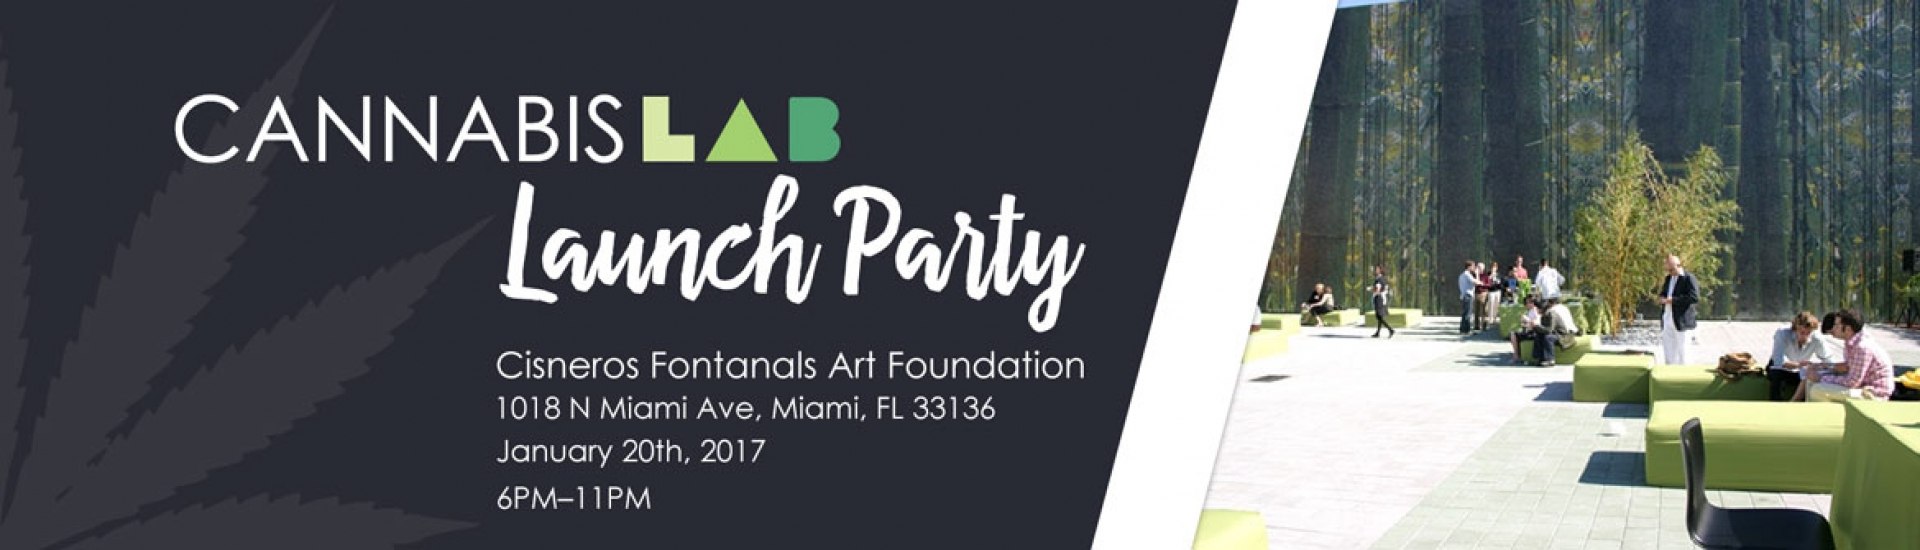 Cannabis LAB Launch Party